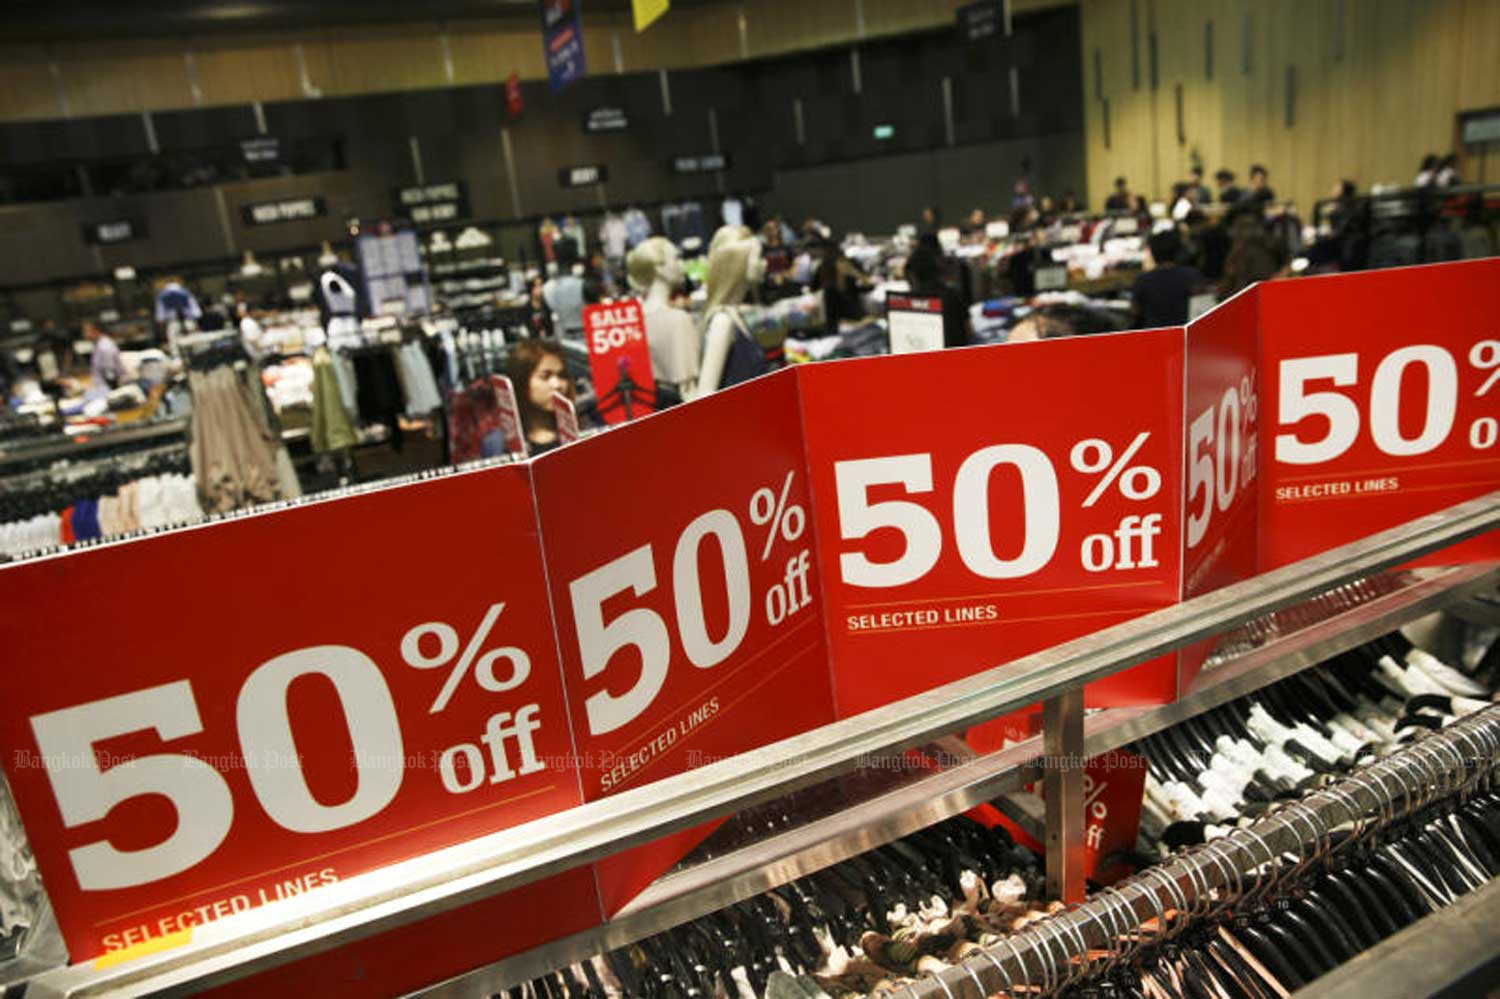 Discount signs attract shoppers at a Bangkok department store. (File photo)